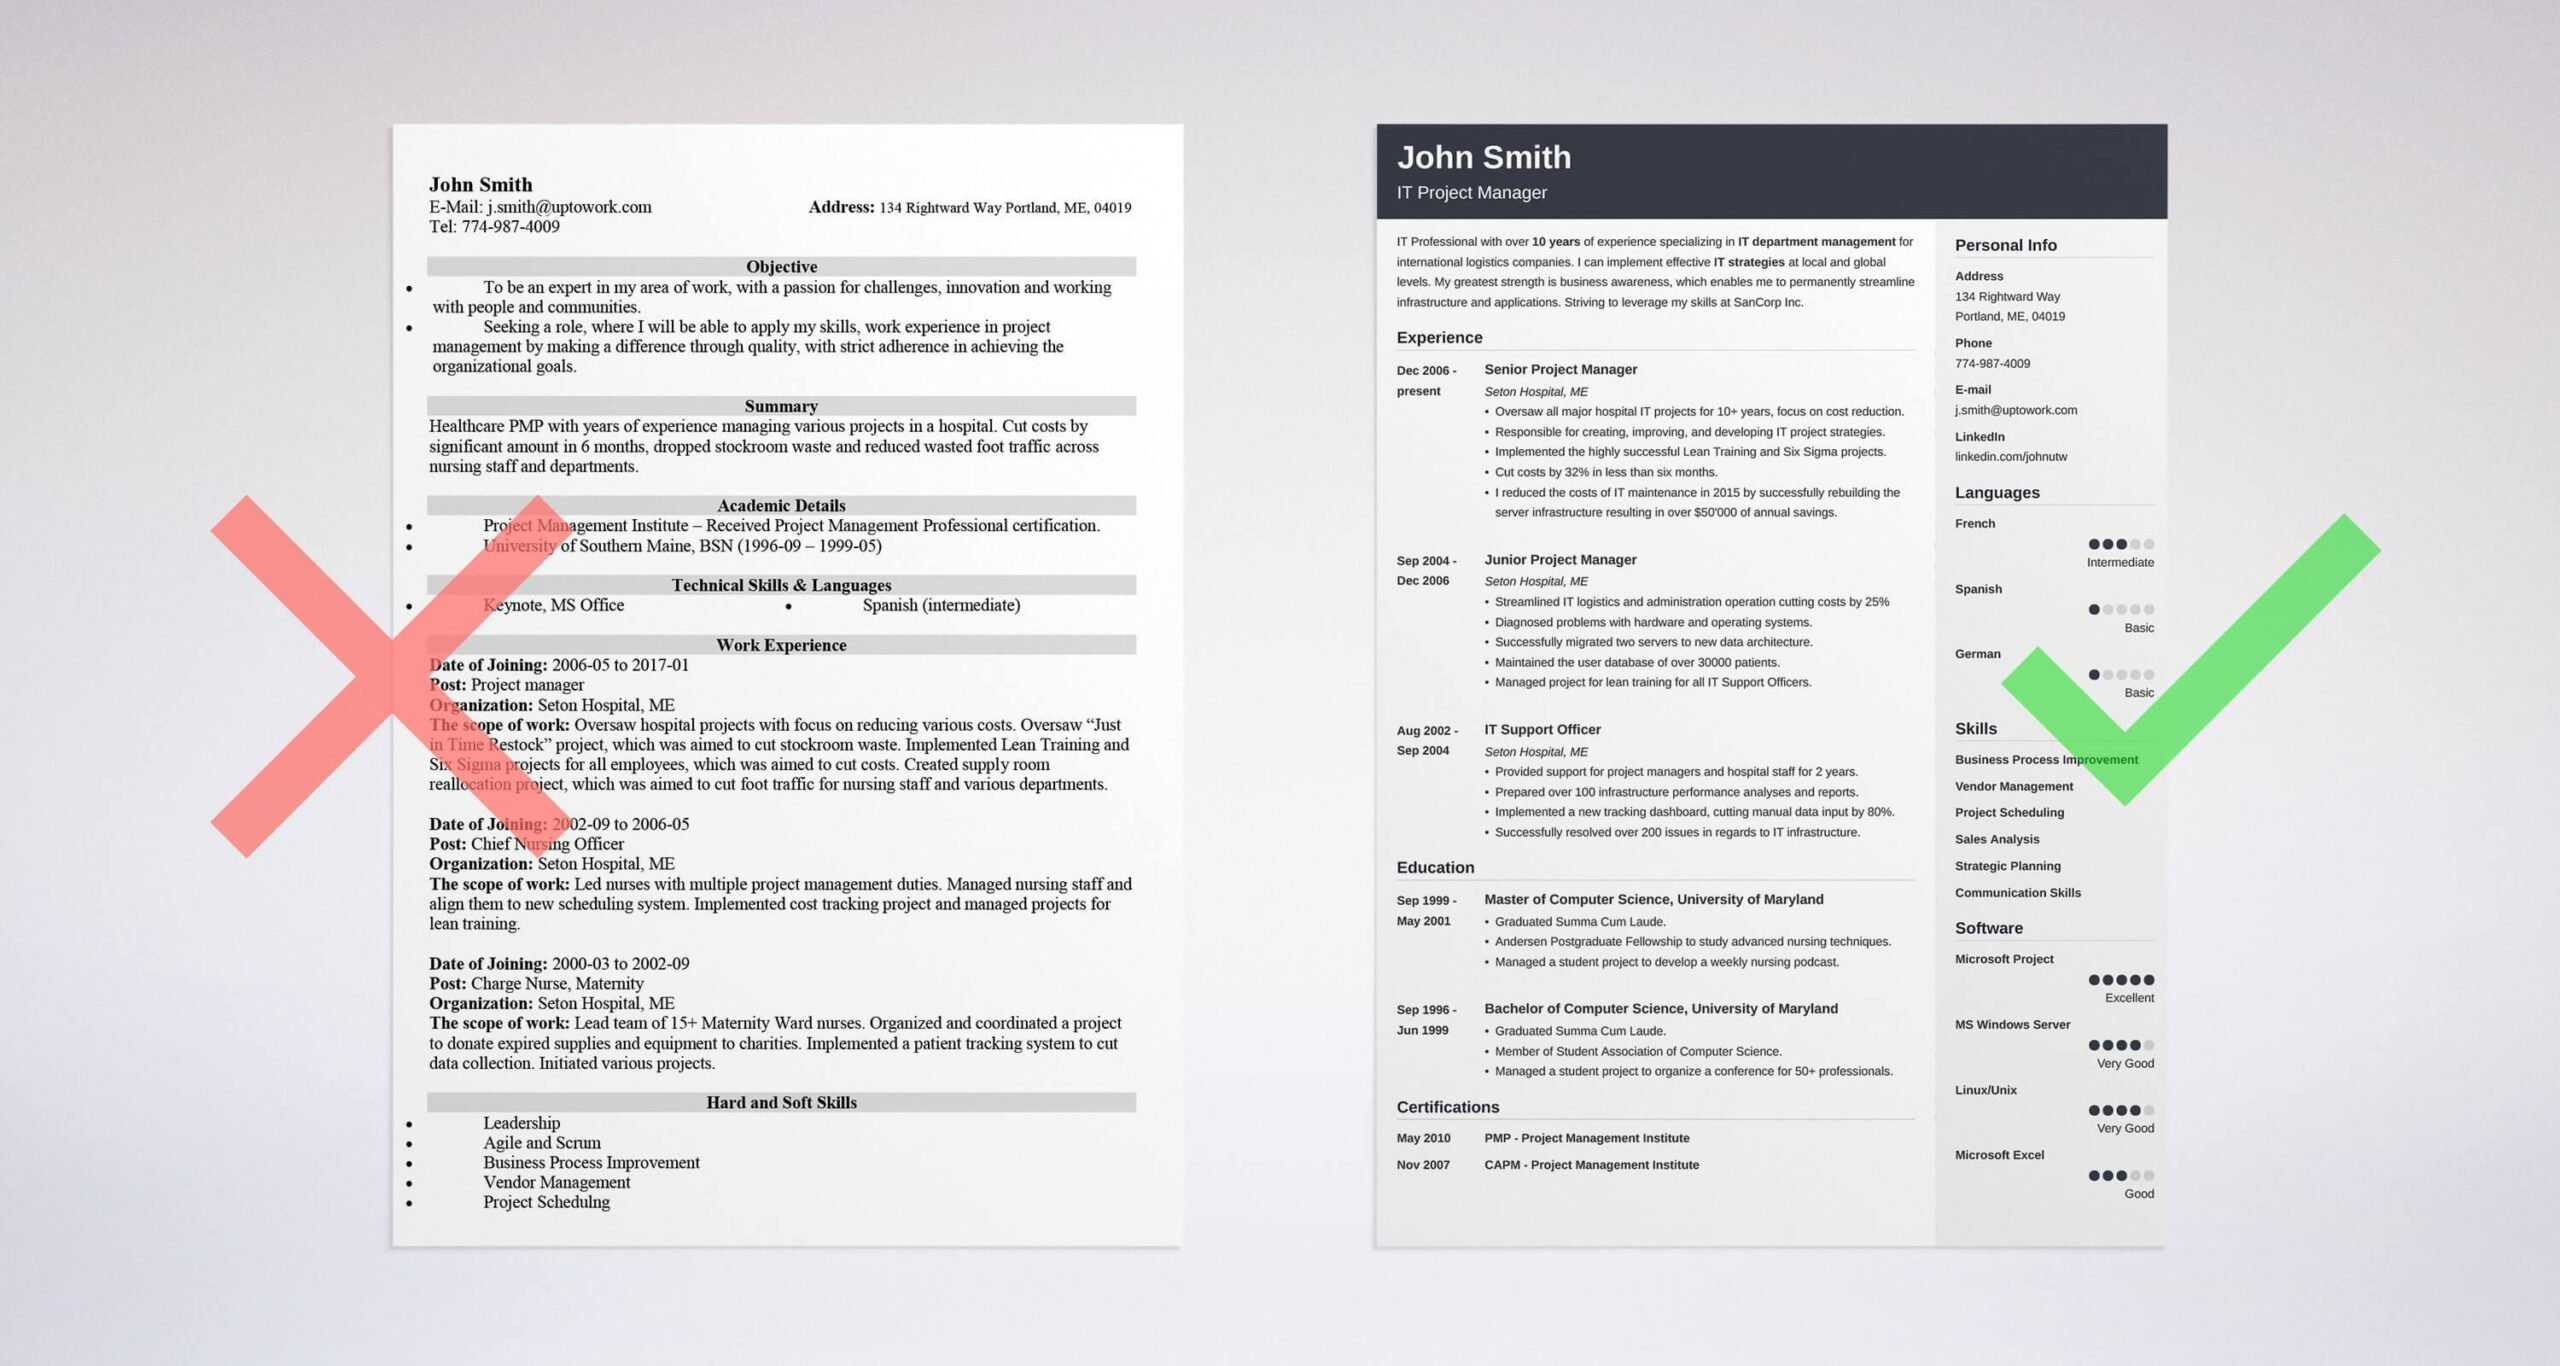 best resume tips great tricks and writing advice creating the project manager makeover Resume Creating The Best Resume